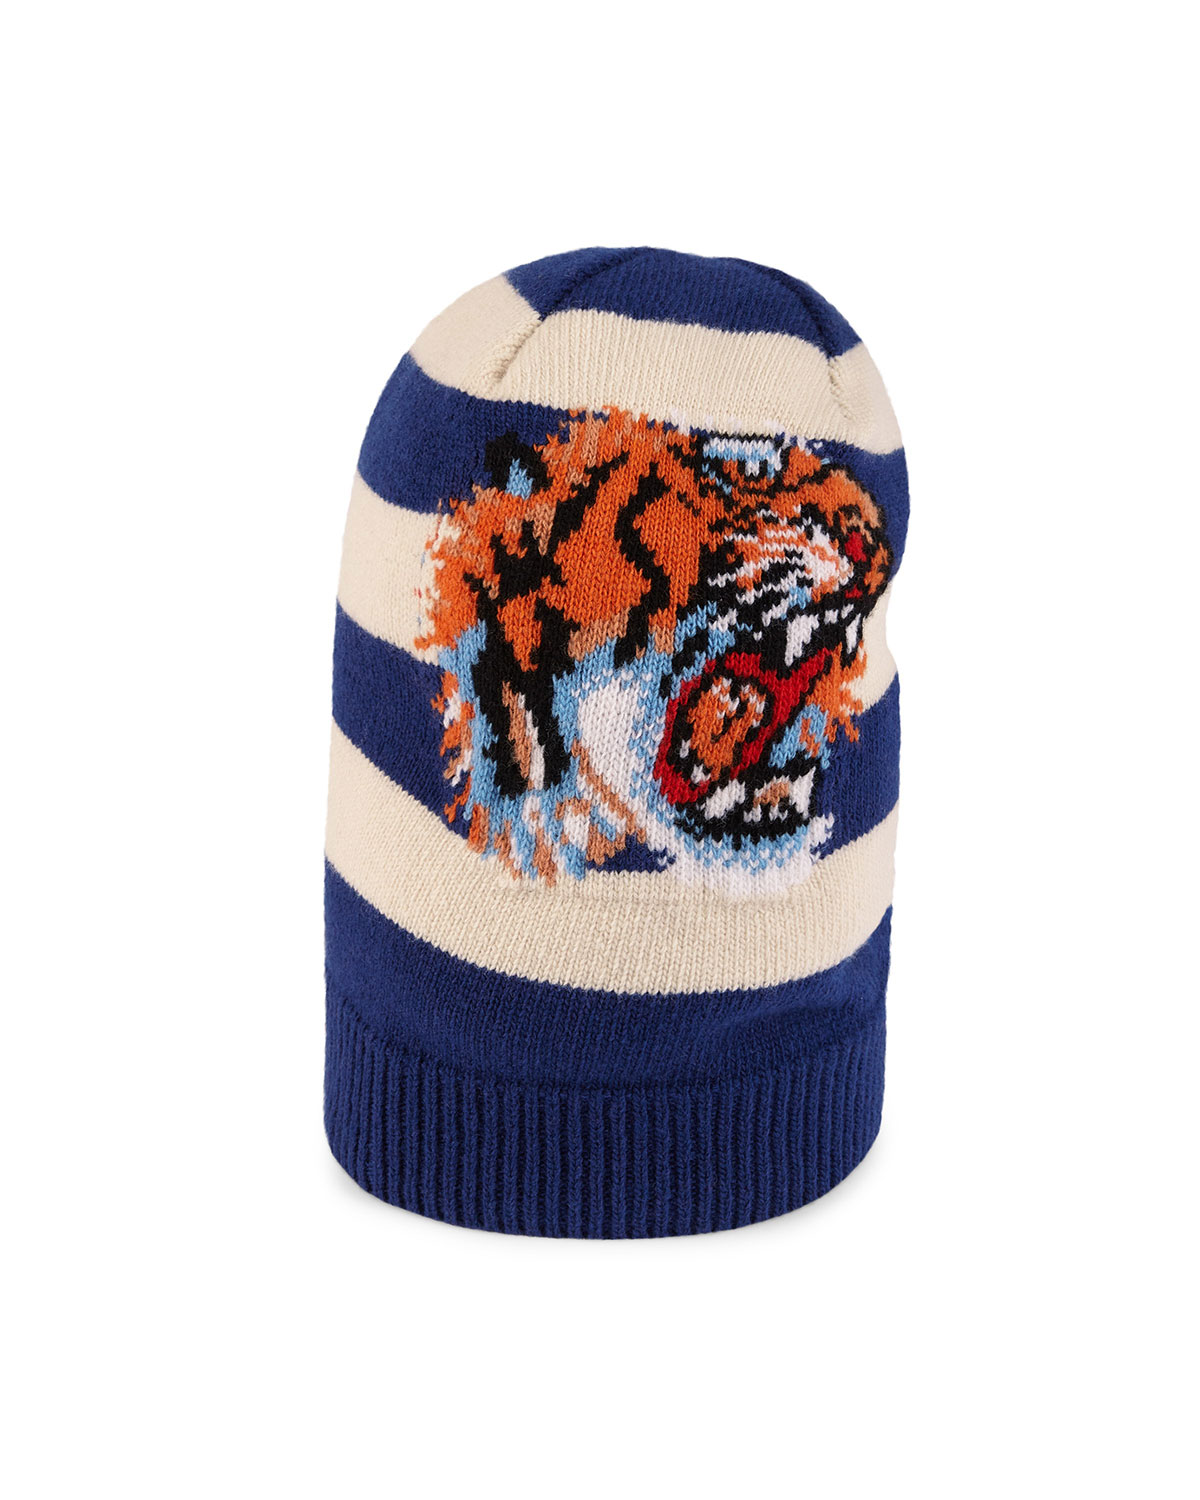 5867f200976 Gucci Striped Wool Hat with Tiger Applique